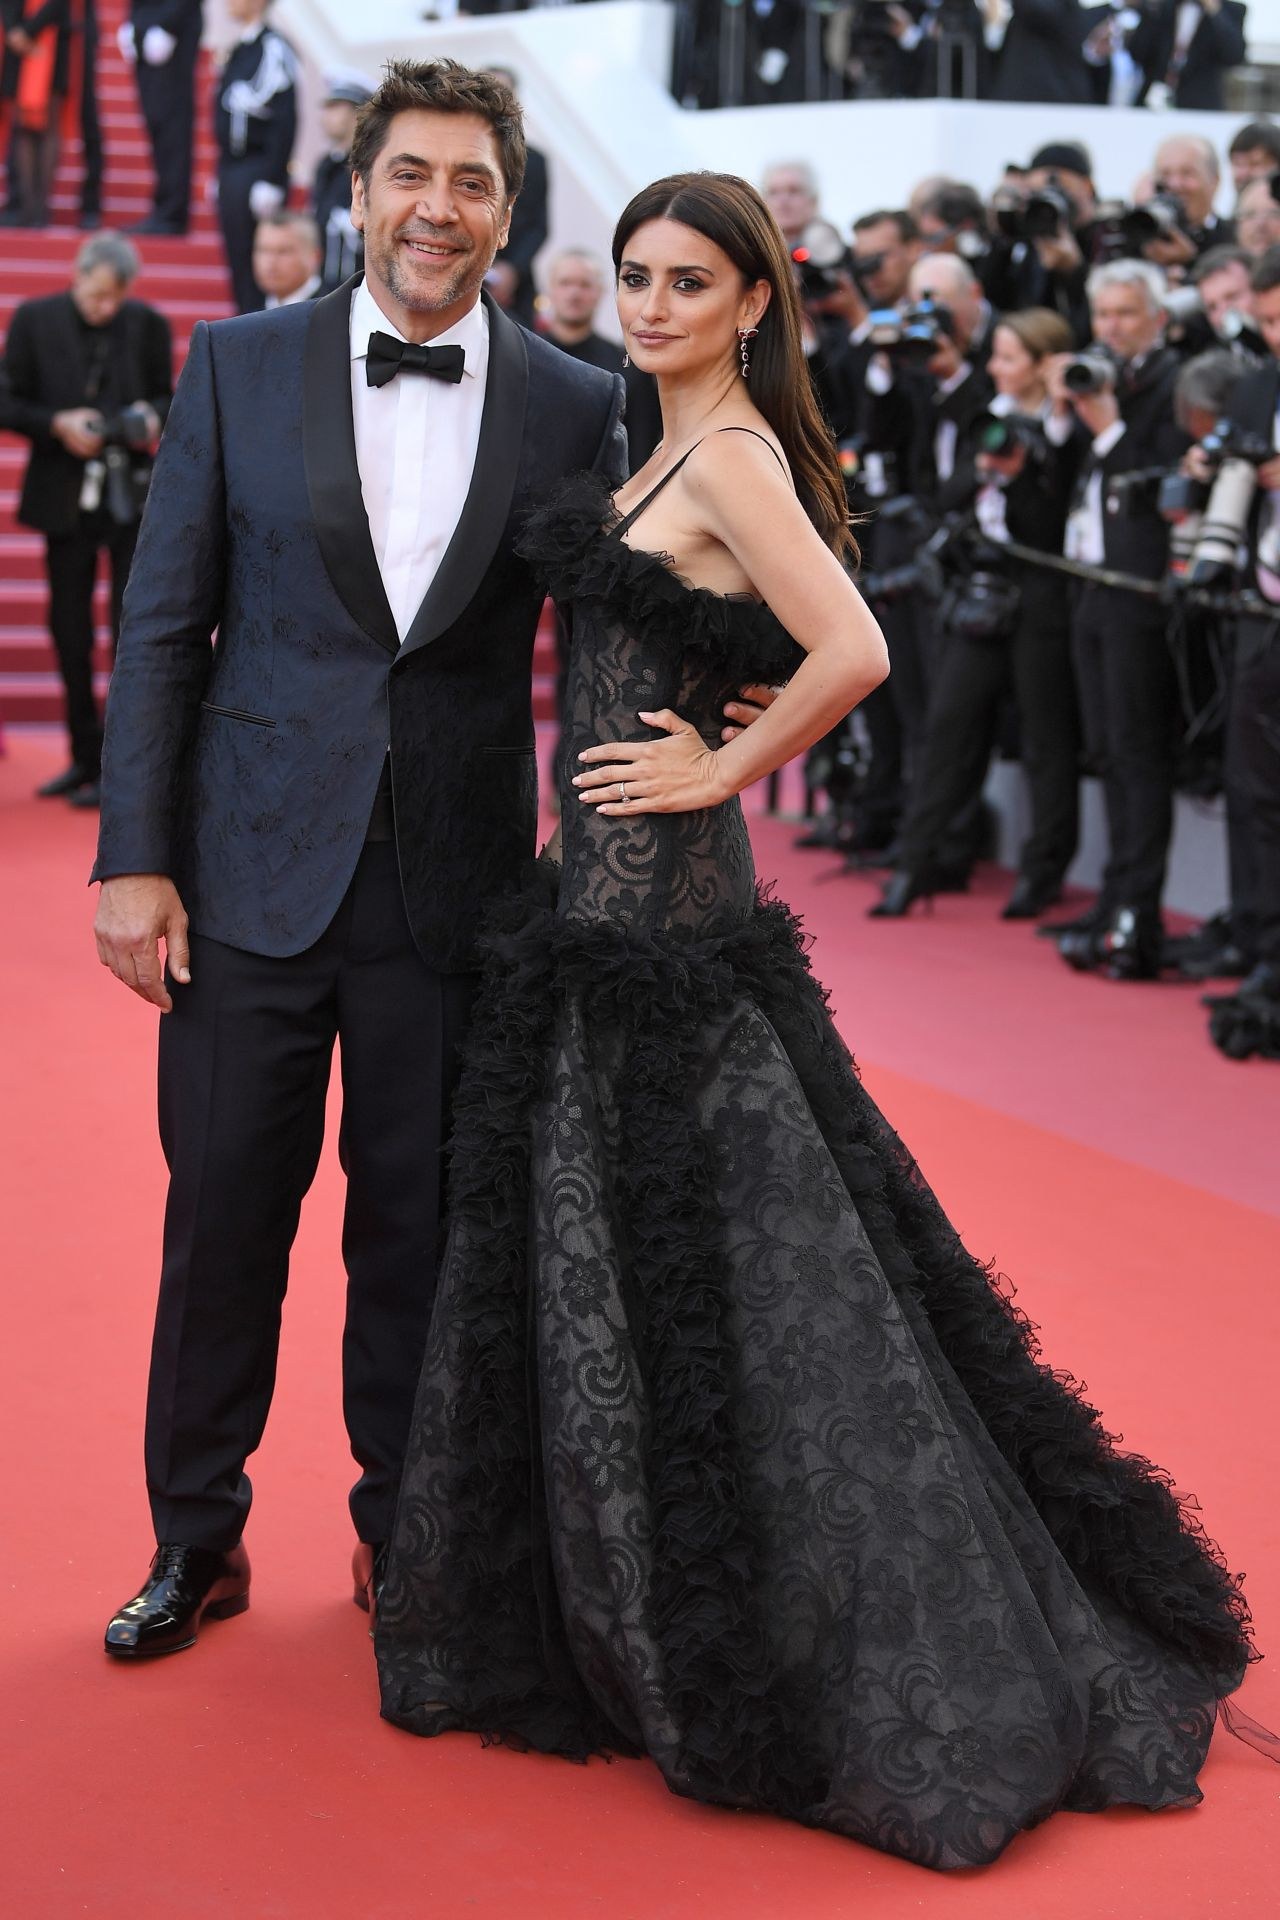 http://celebmafia.com/wp-content/uploads/2018/05/penelope-cruz-everybody-knows-premiere-and-cannes-film-festival-2018-opening-ceremony-8.jpg